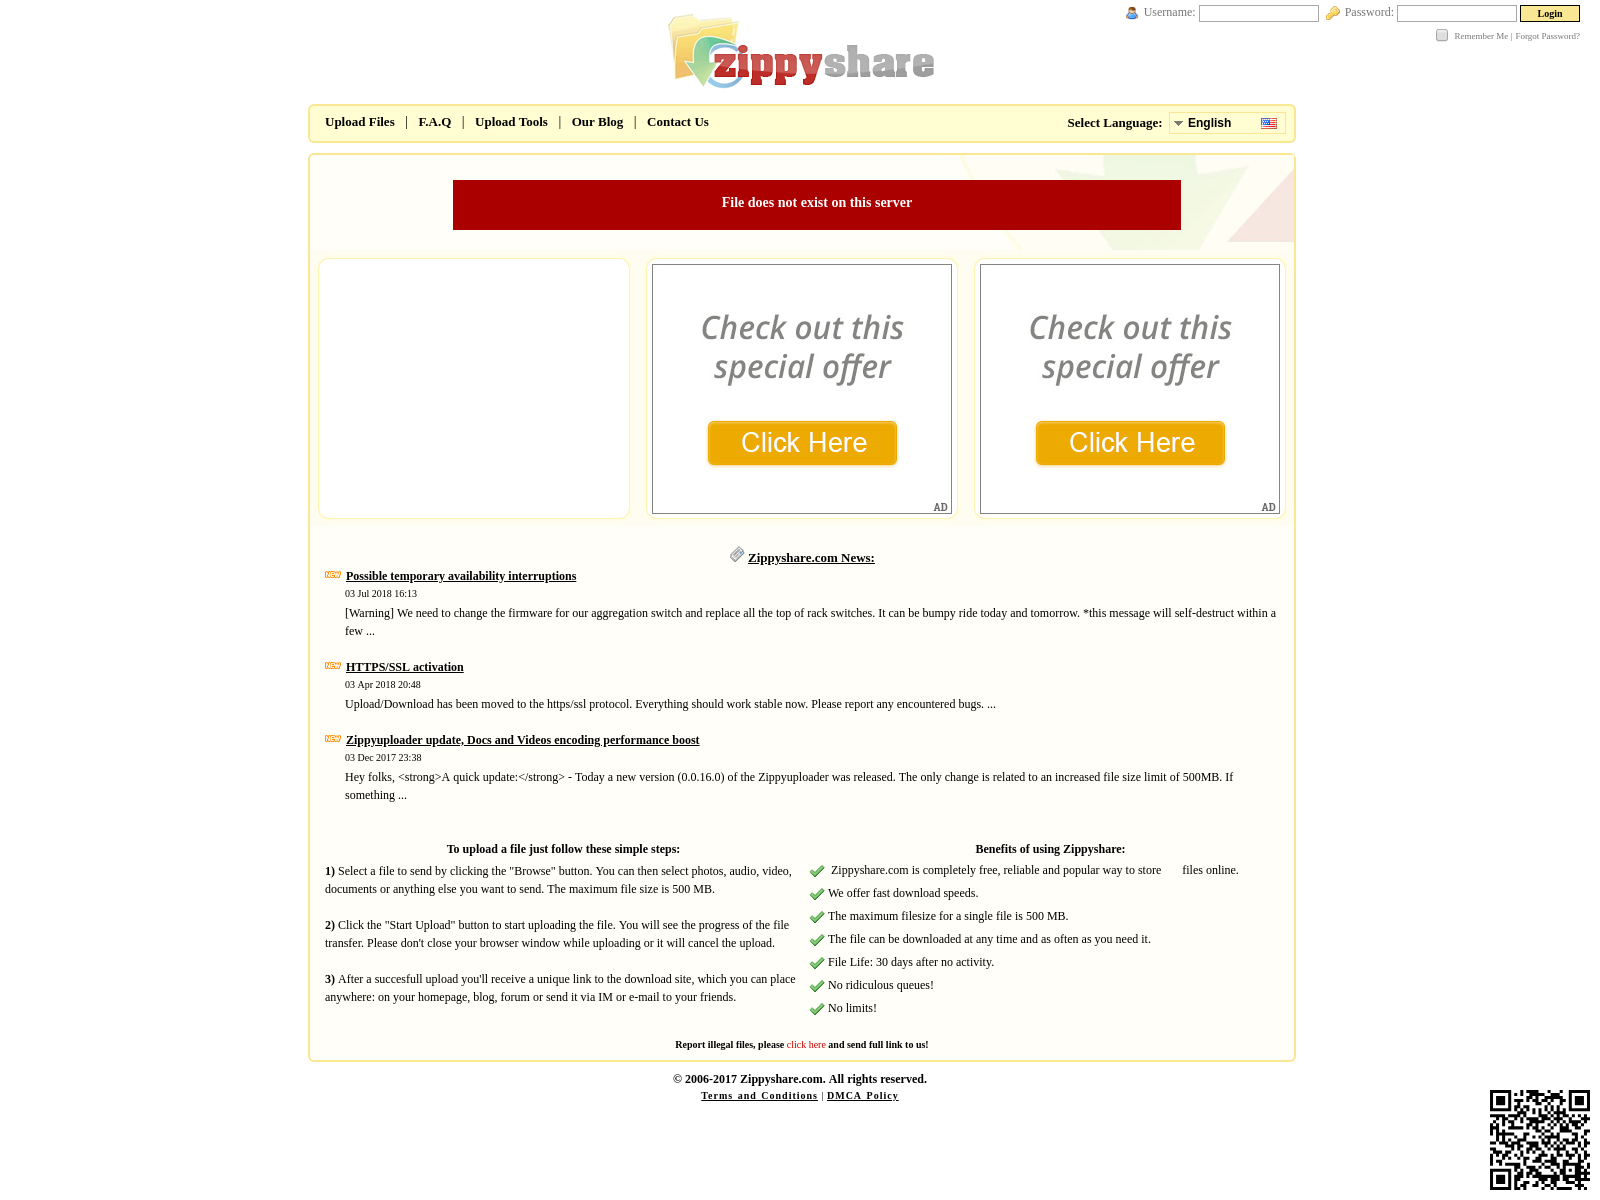 How To Download Files From Zippyshare D0wnloadfresh